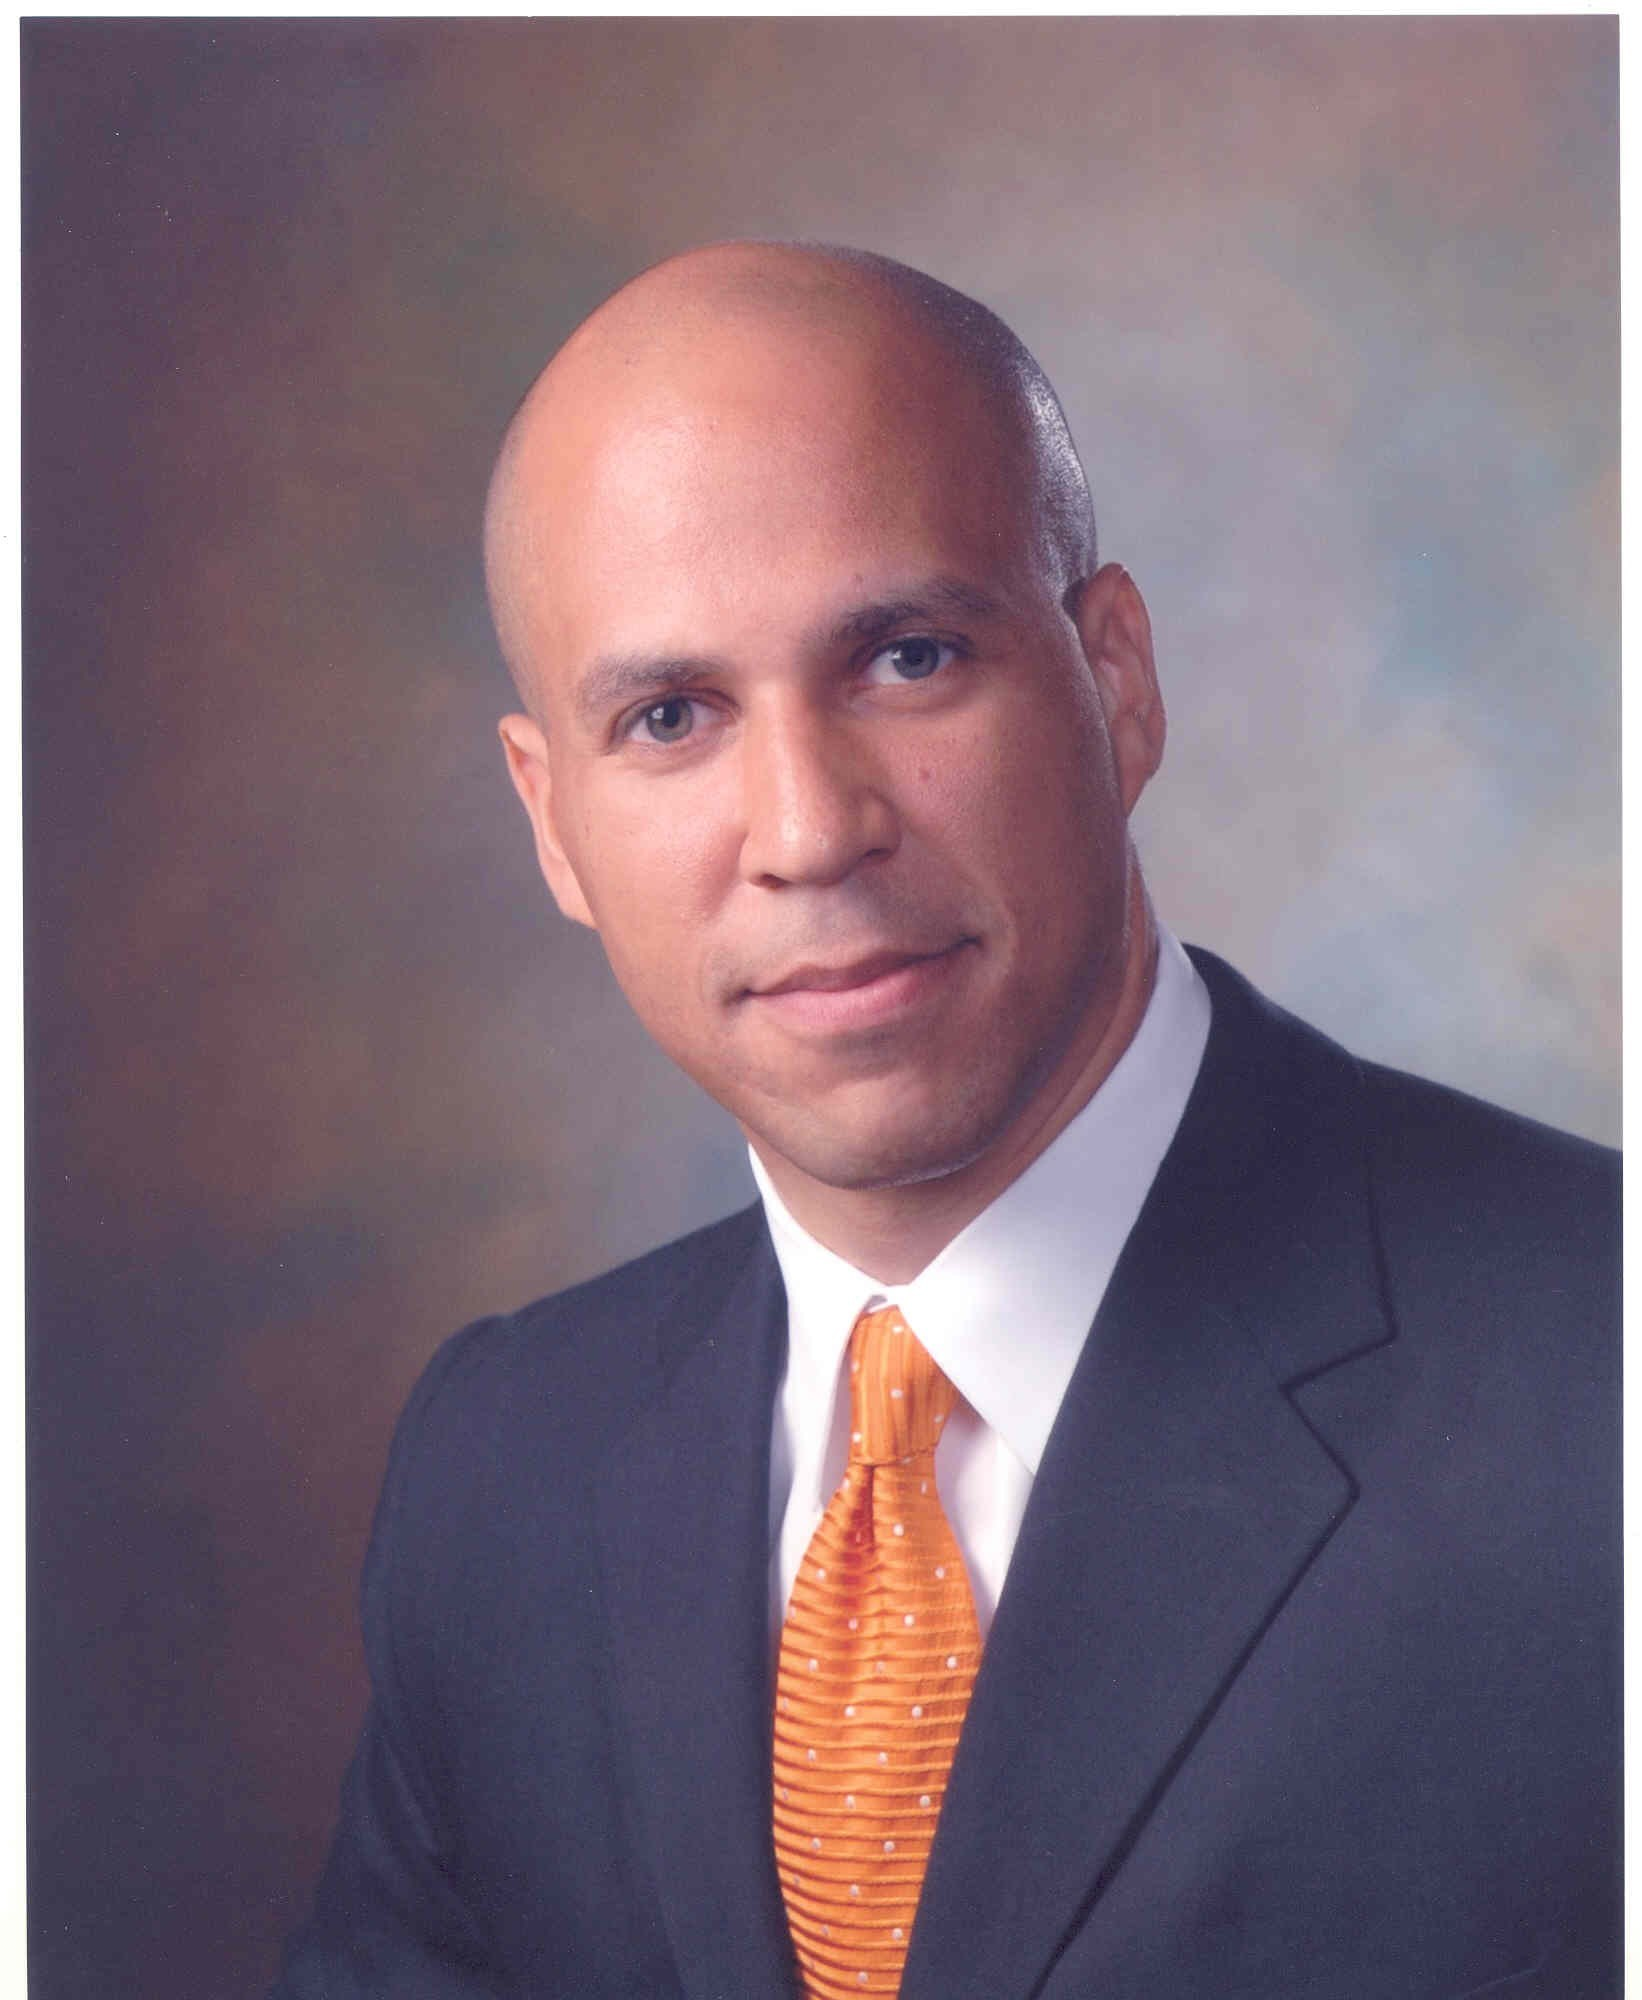 cory booker known people famous people news and